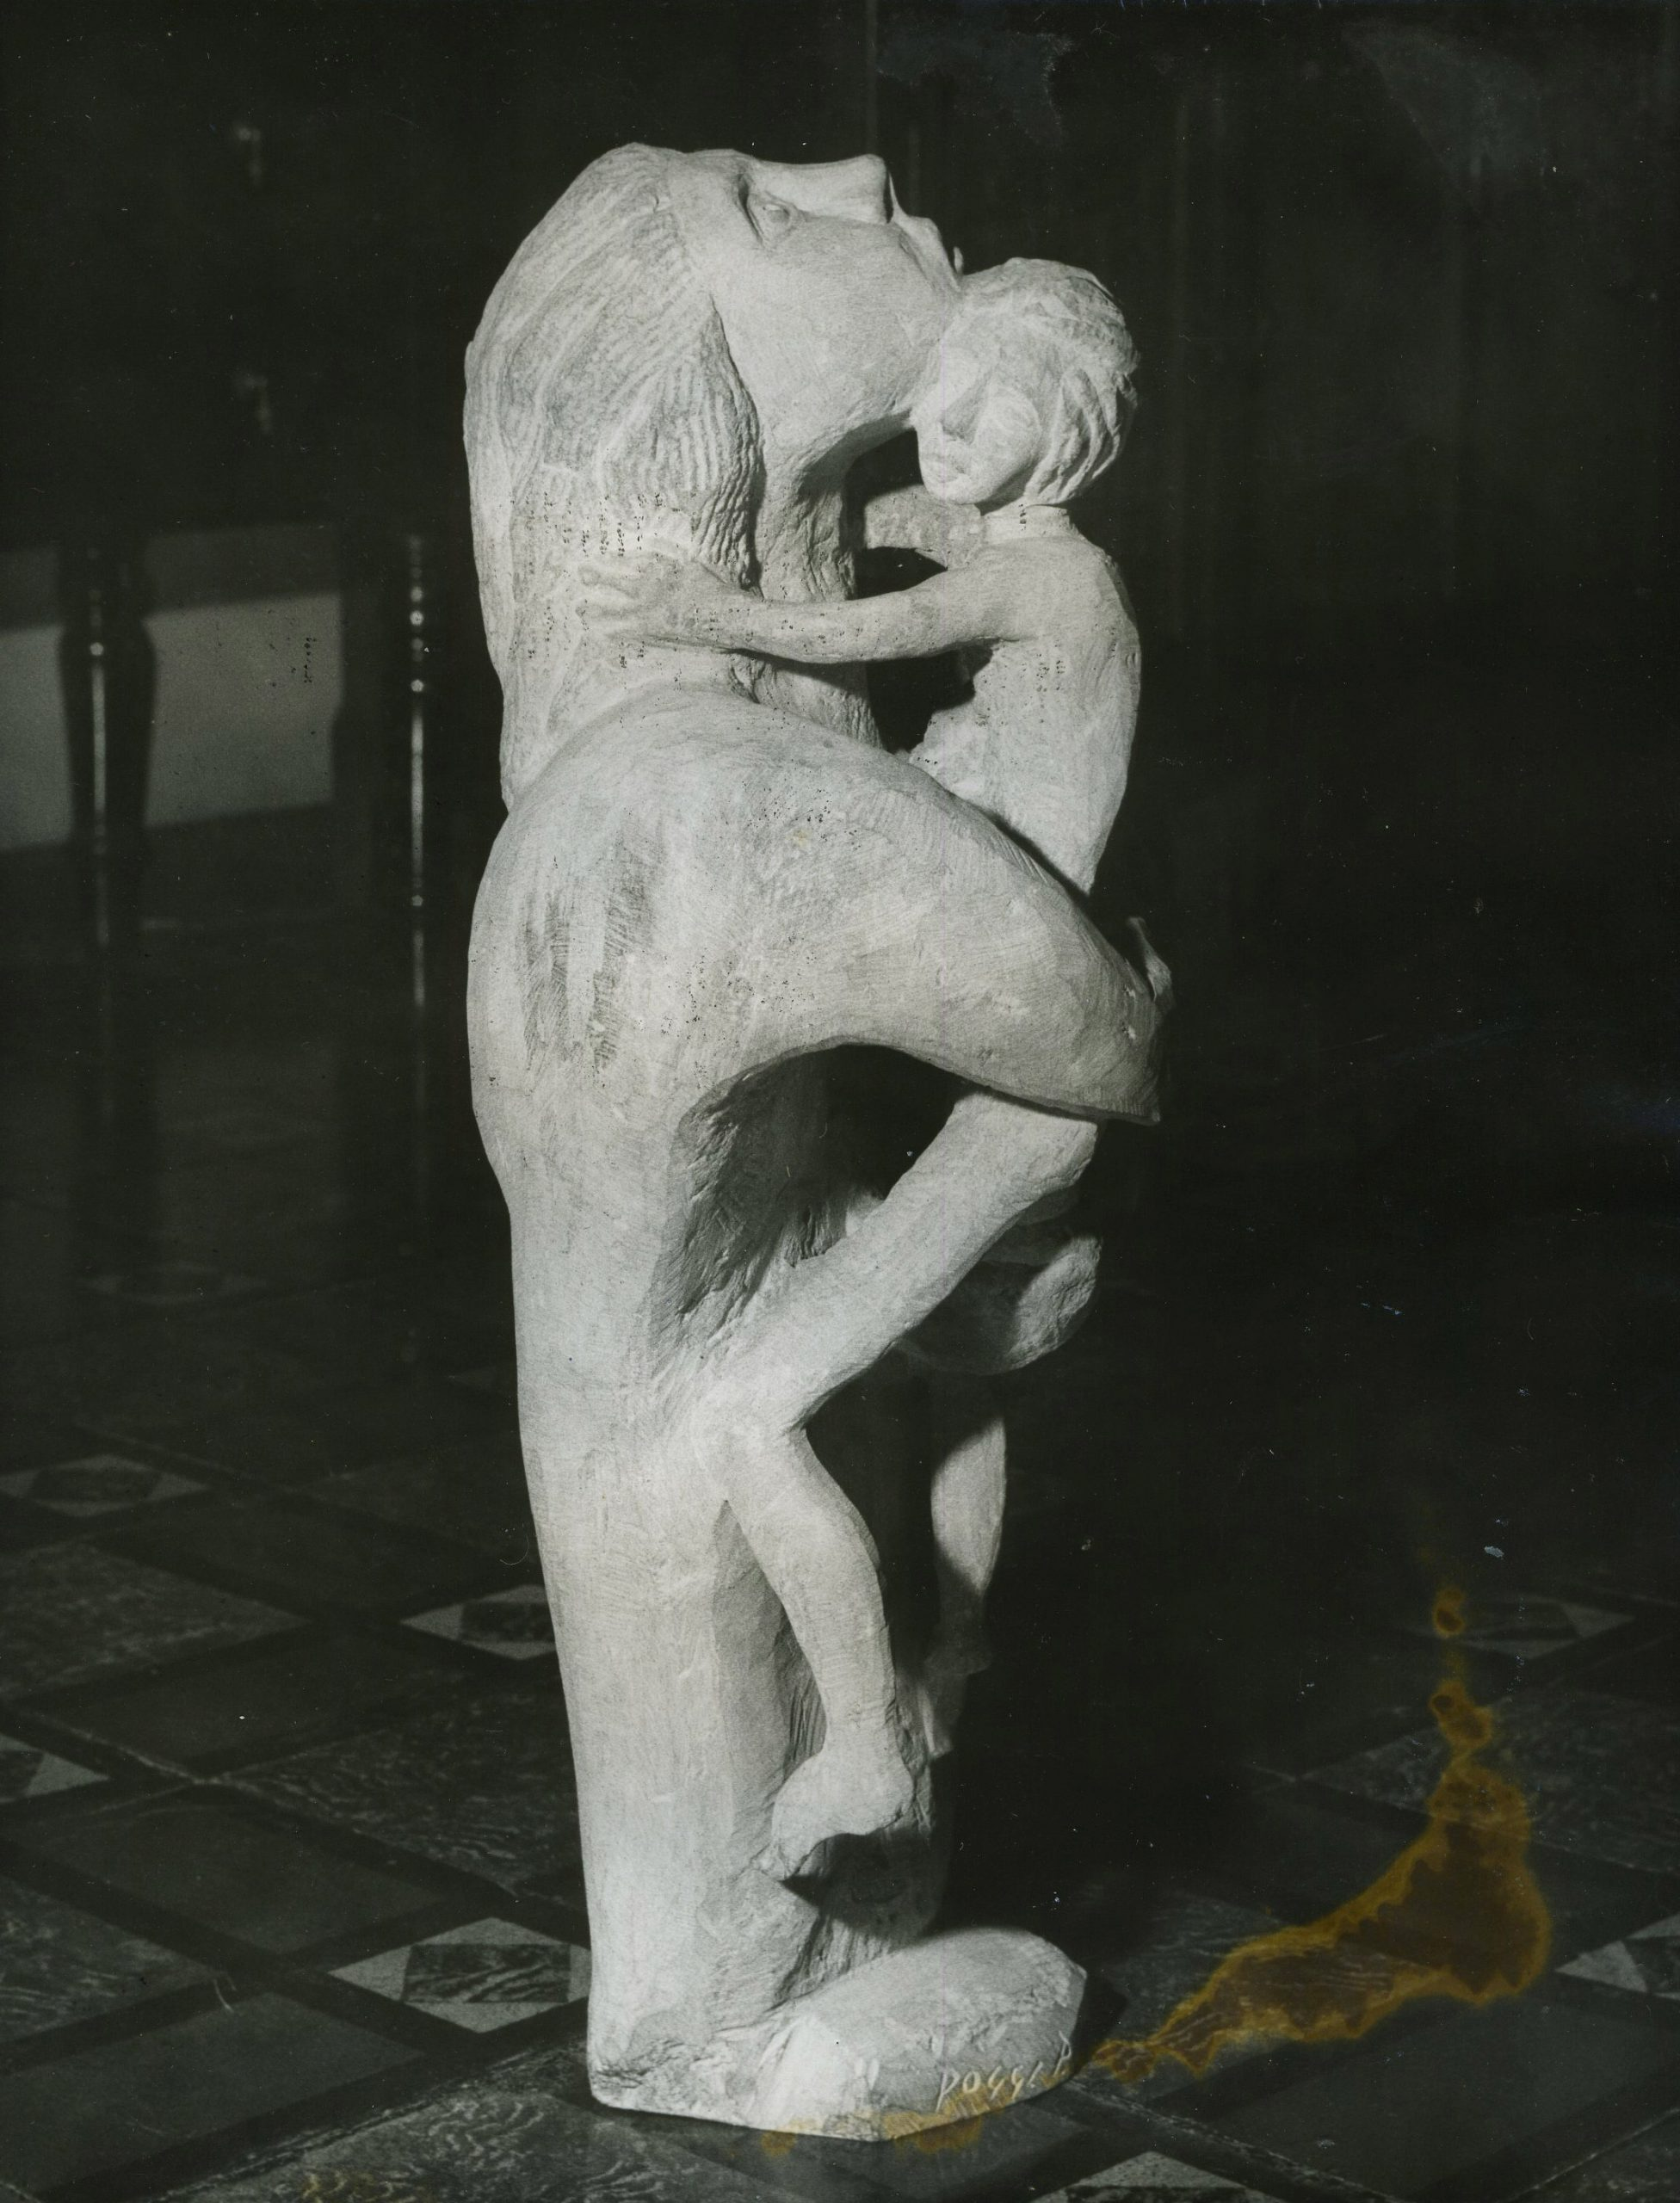 Stone sculpture of large figure looking up and holding smaller one in arms.